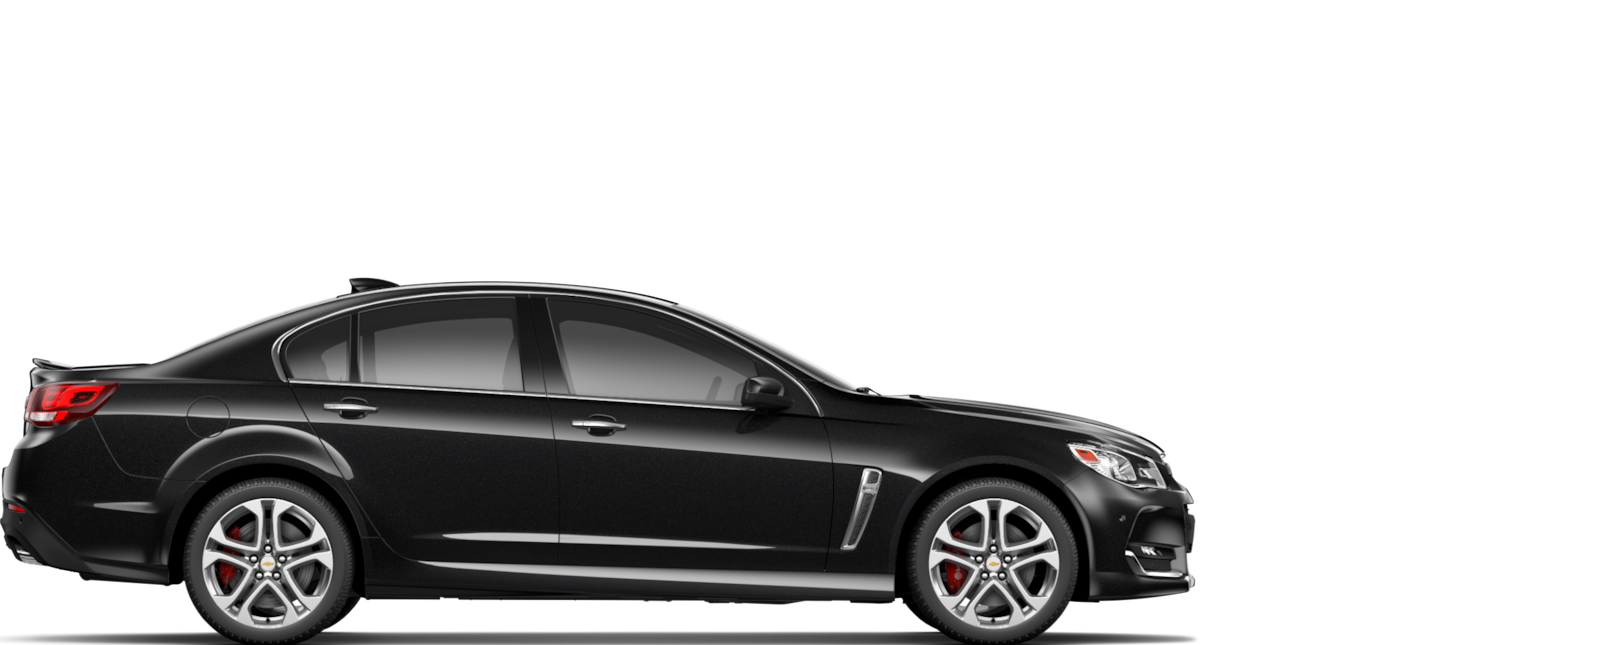 Coupe 2015 chevy ss coupe : 2017 SS 4-Door Sports Sedan | Chevrolet